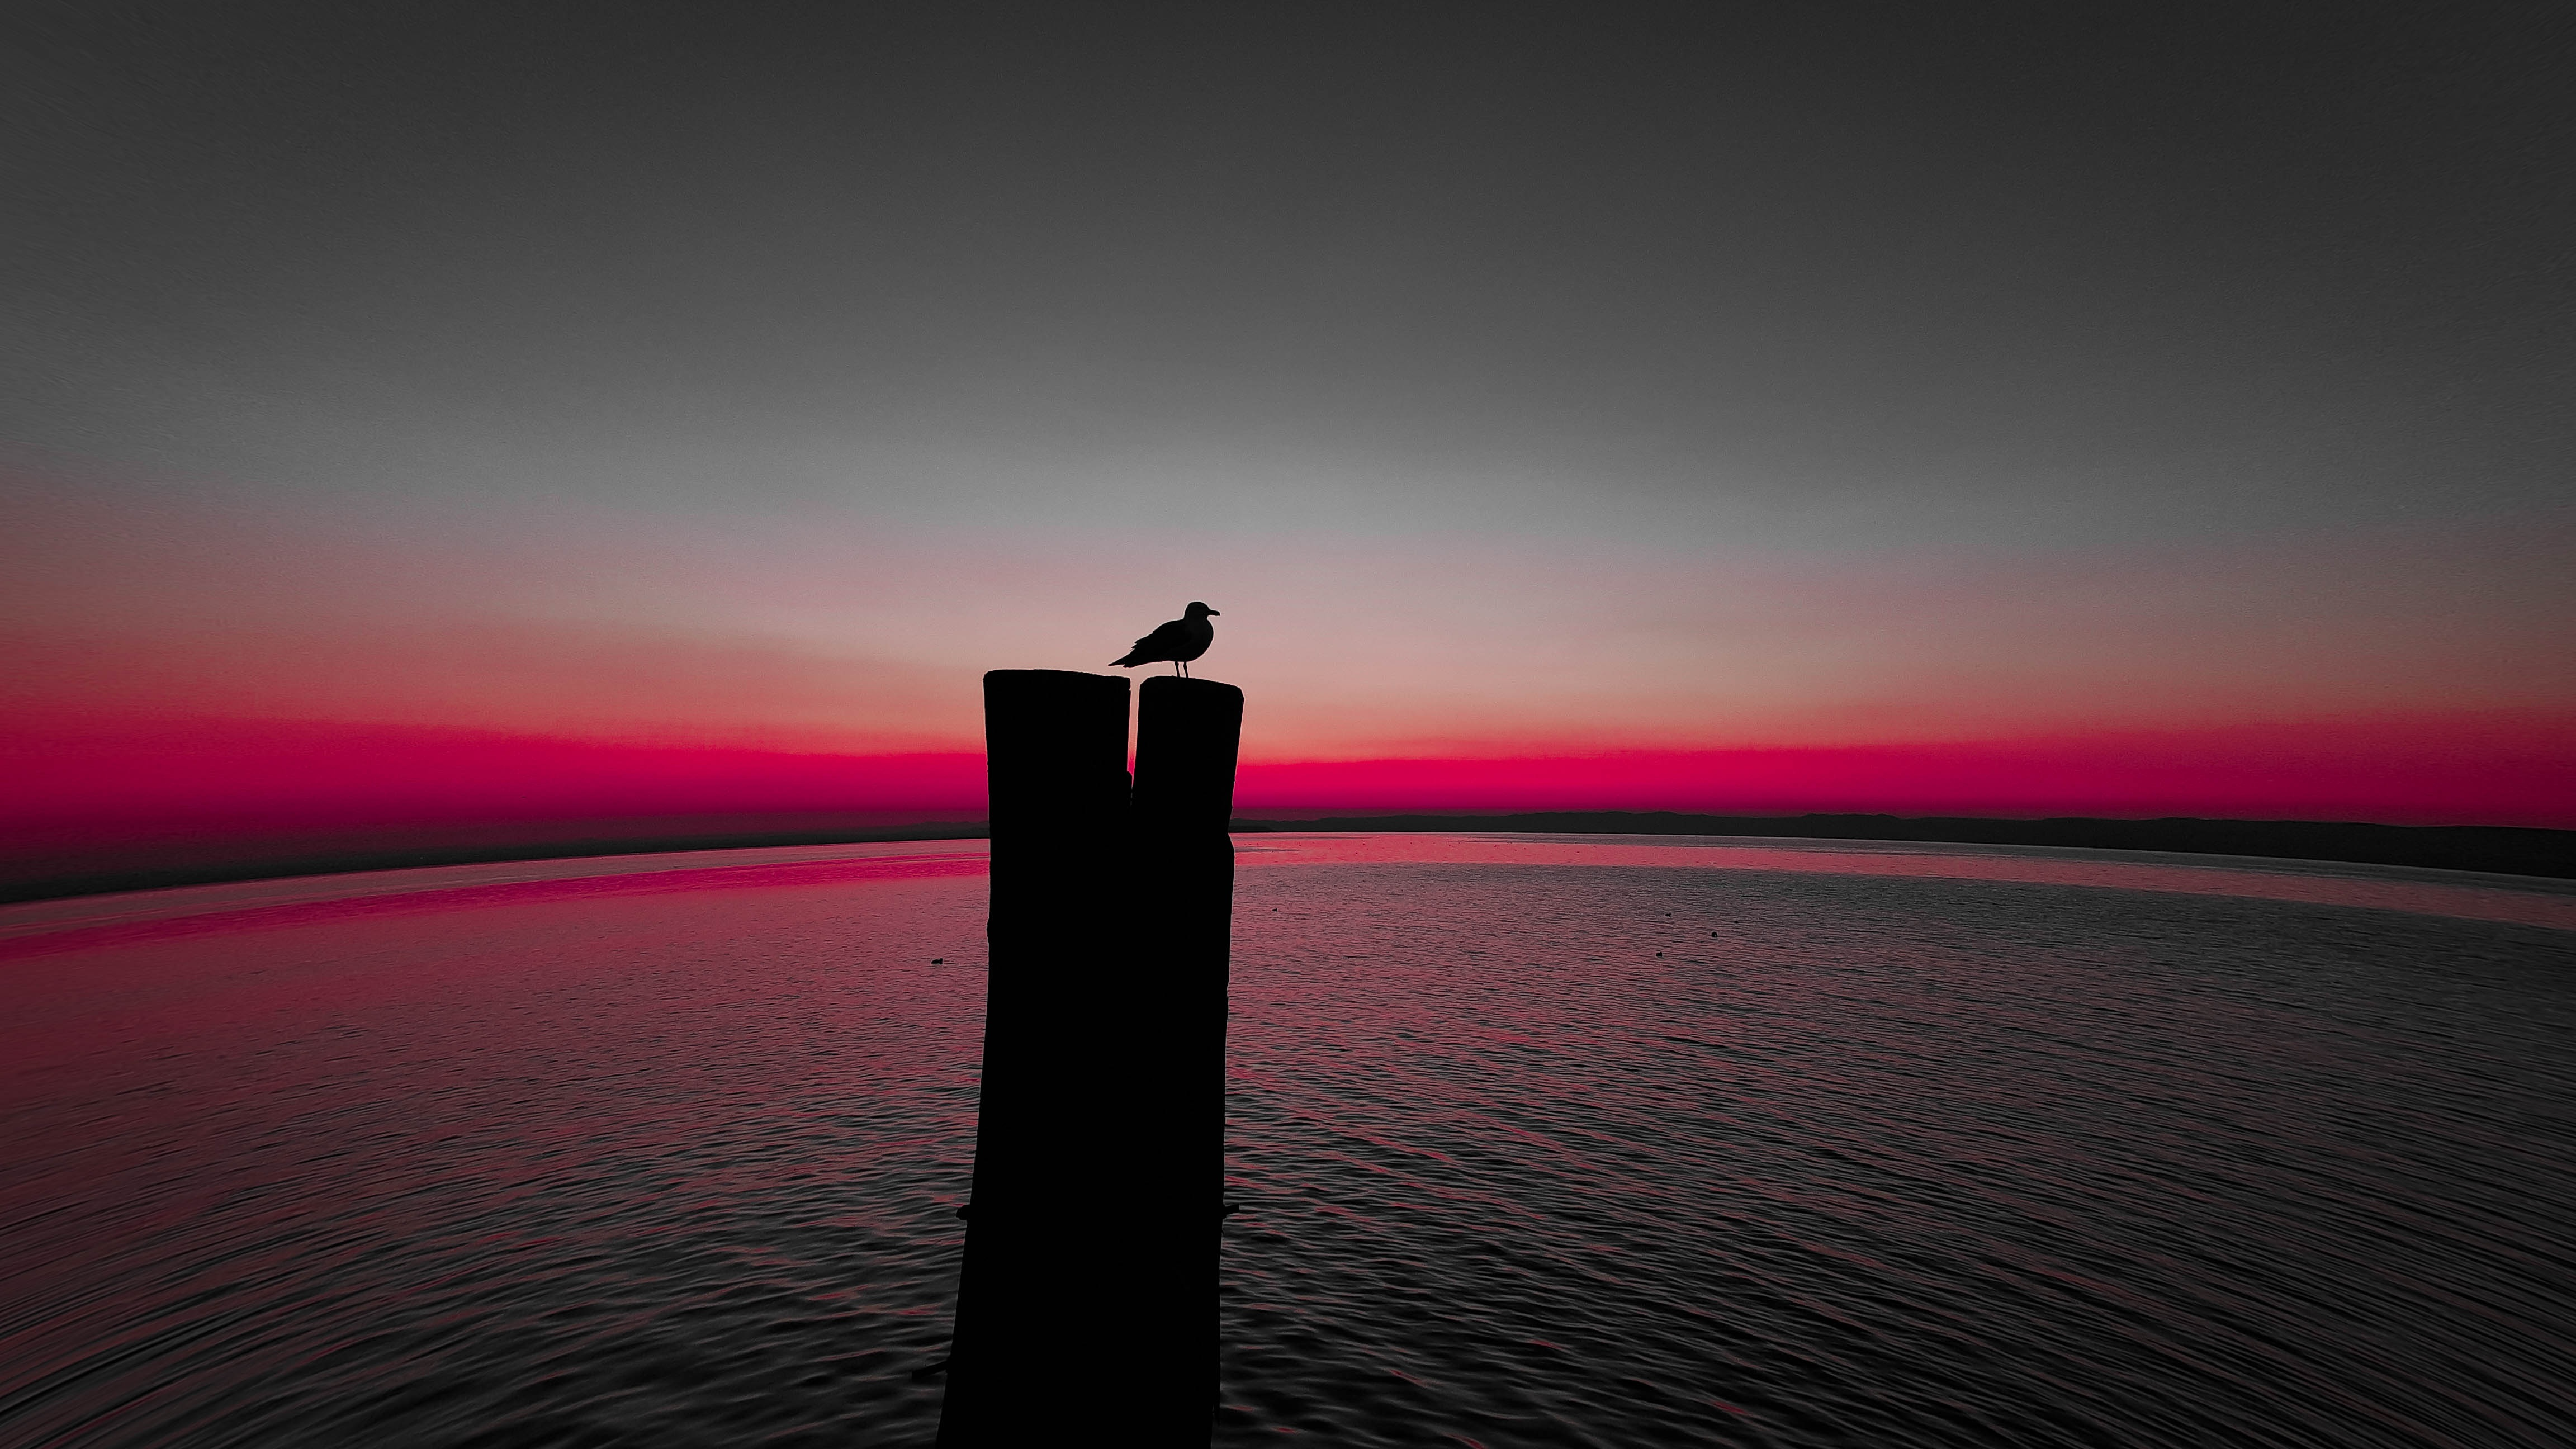 84310 download wallpaper Animals, Sea, Horizon, Silhouette, Bird, Pillar, Post, Gull, Seagull screensavers and pictures for free